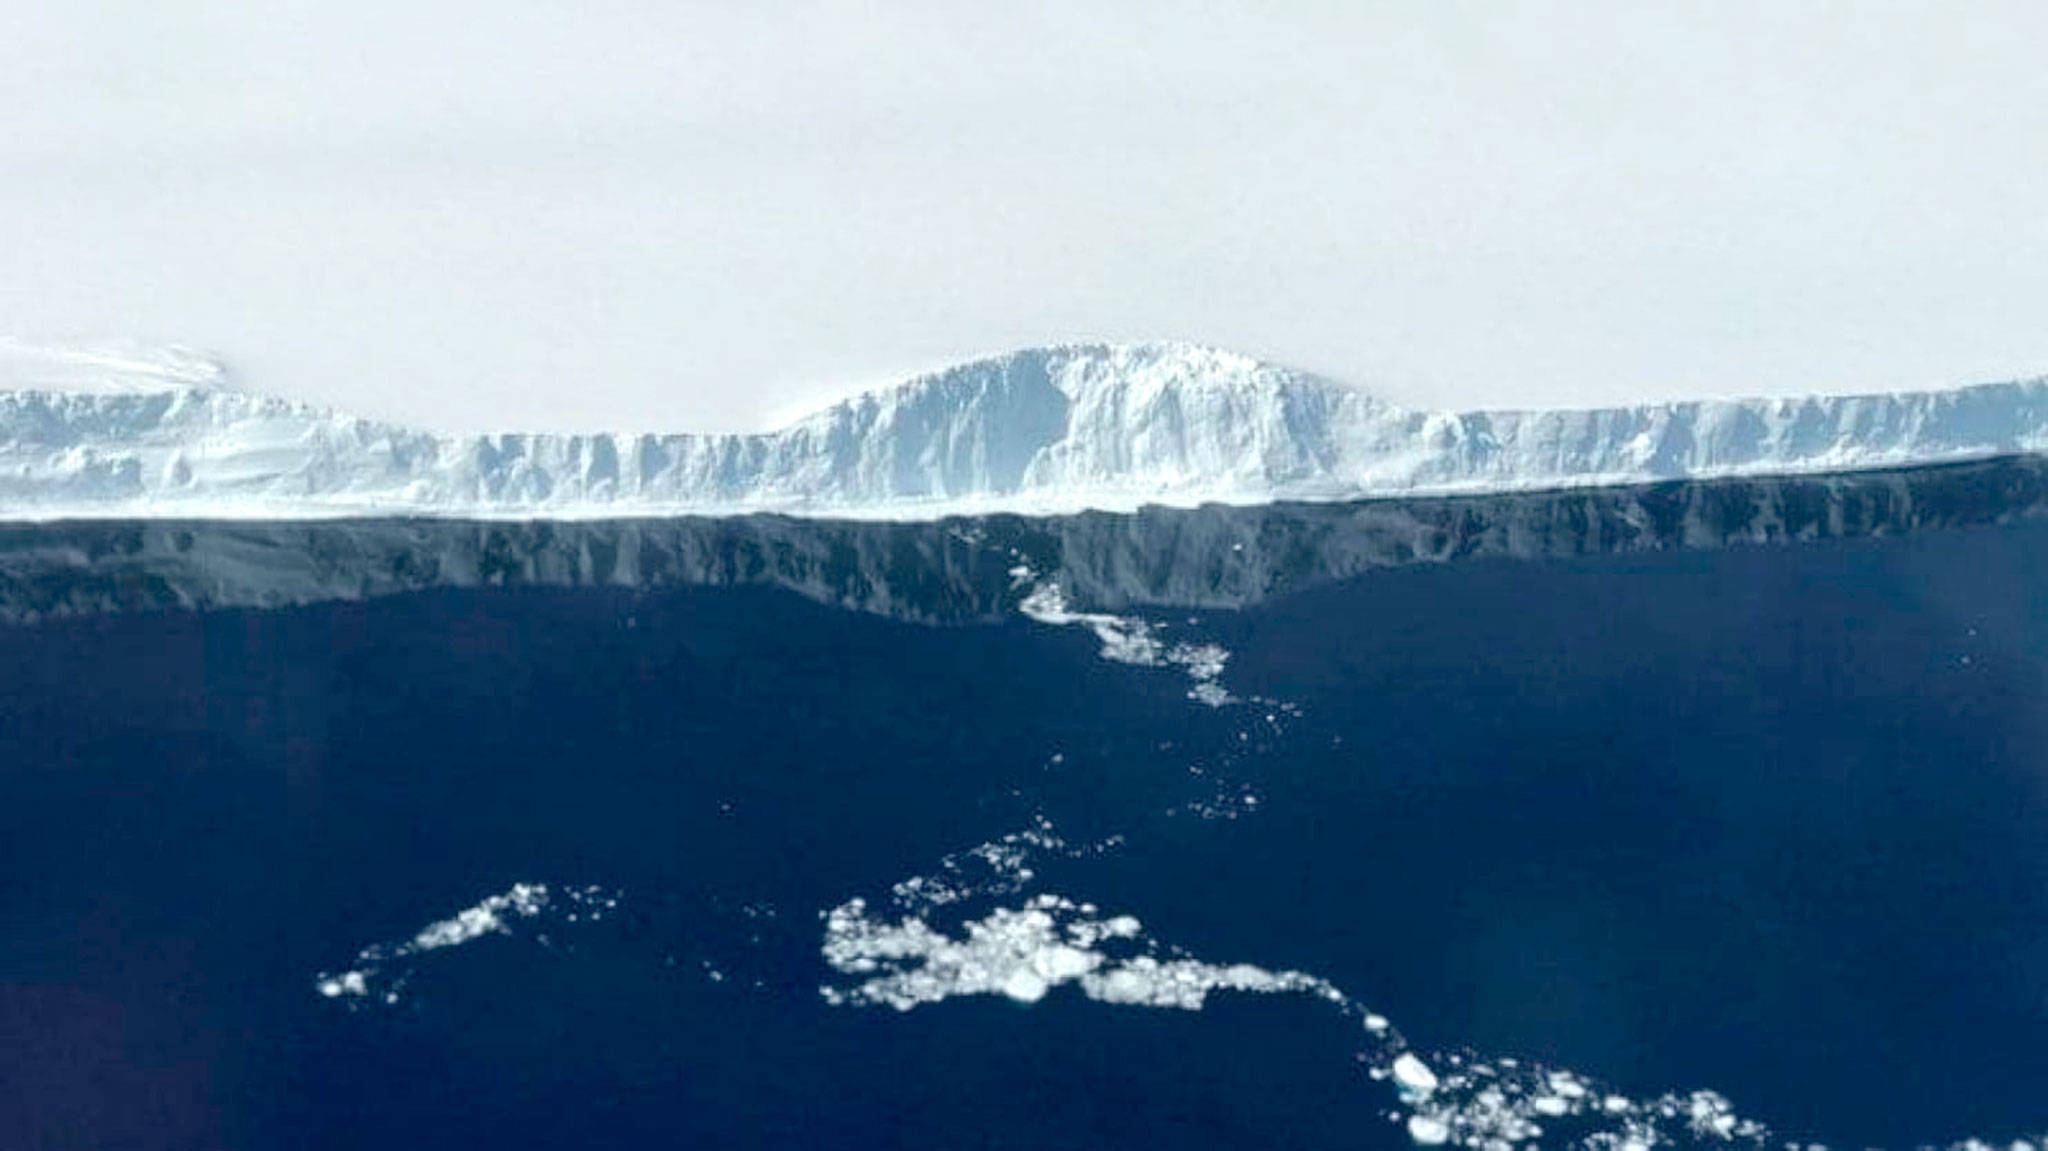 The edge of A-68, the iceberg that detached from the Larsen C ice shelf in July. (NASA/Nathan Kurtz)